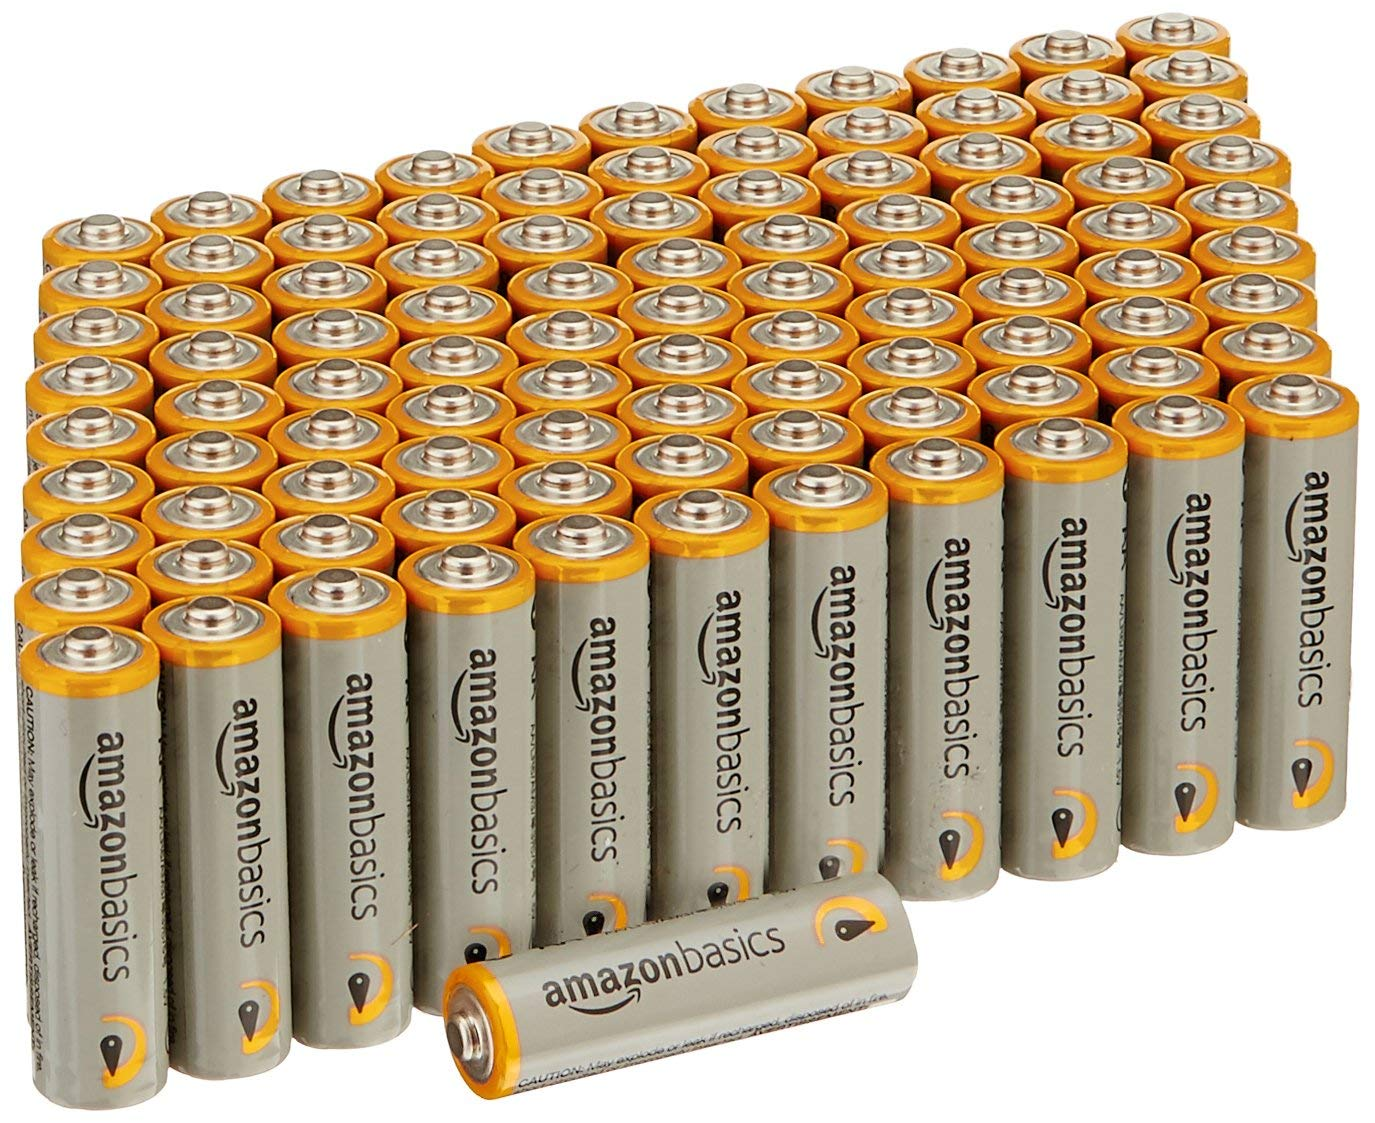 AA Performance Alkaline Batteries (100-Pack)